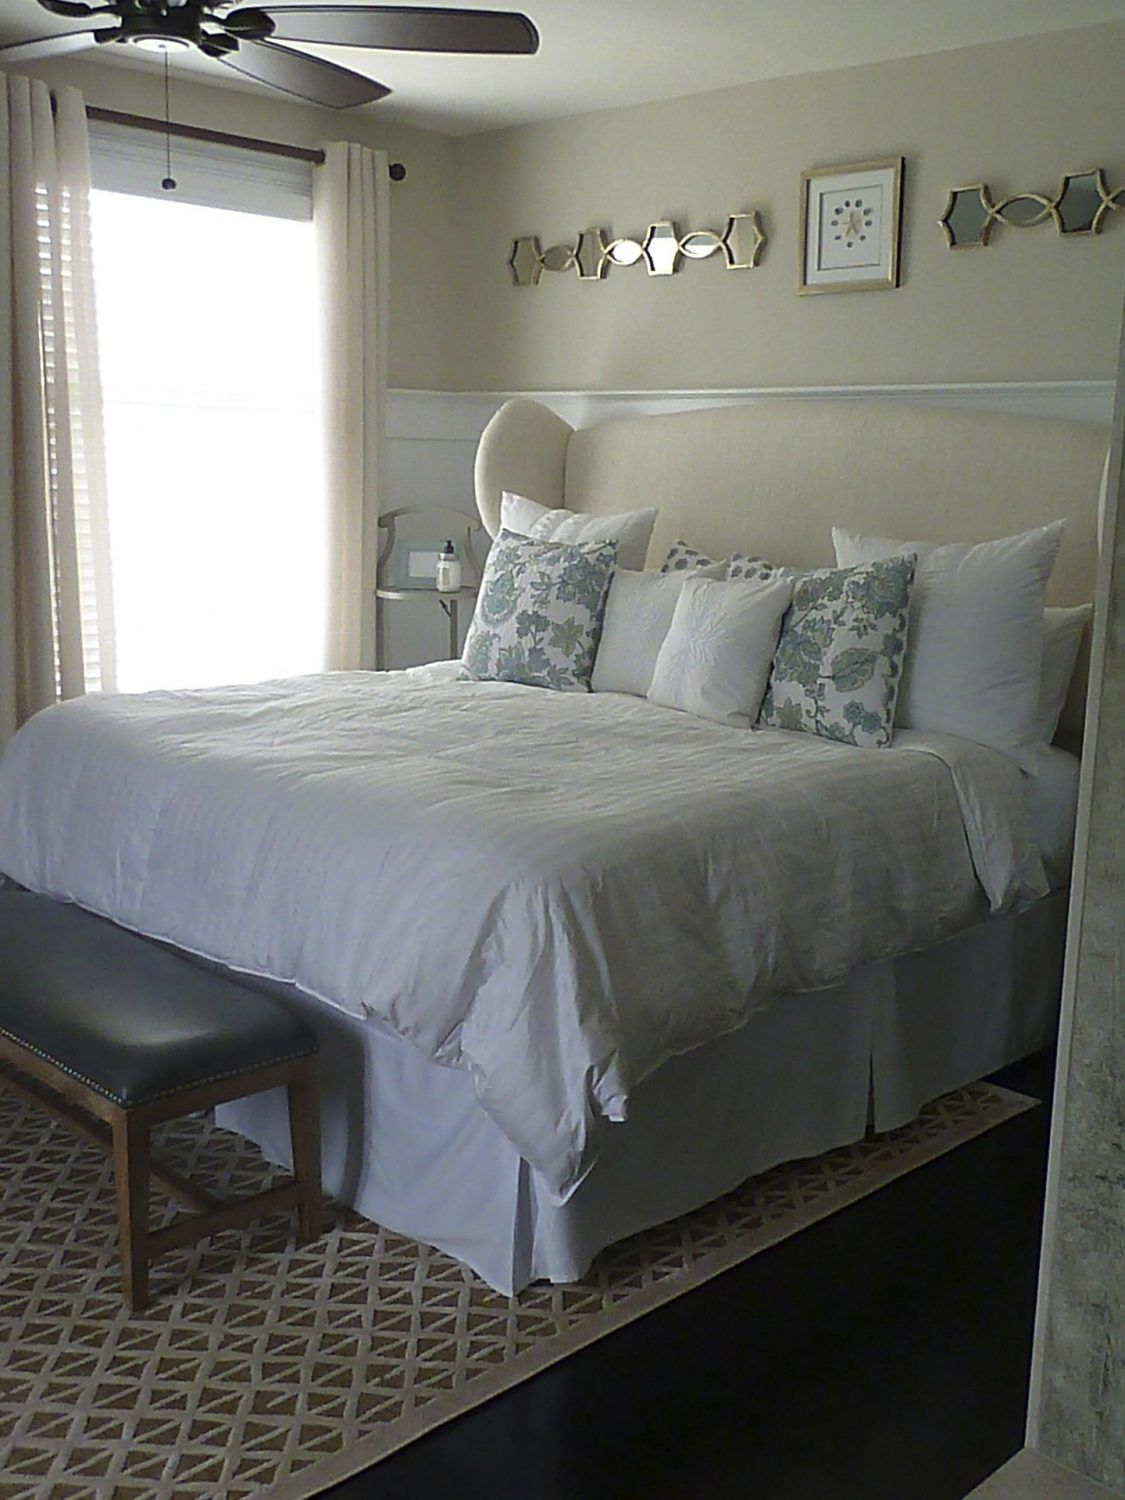 upholstered headboard compliments custom wainscoting